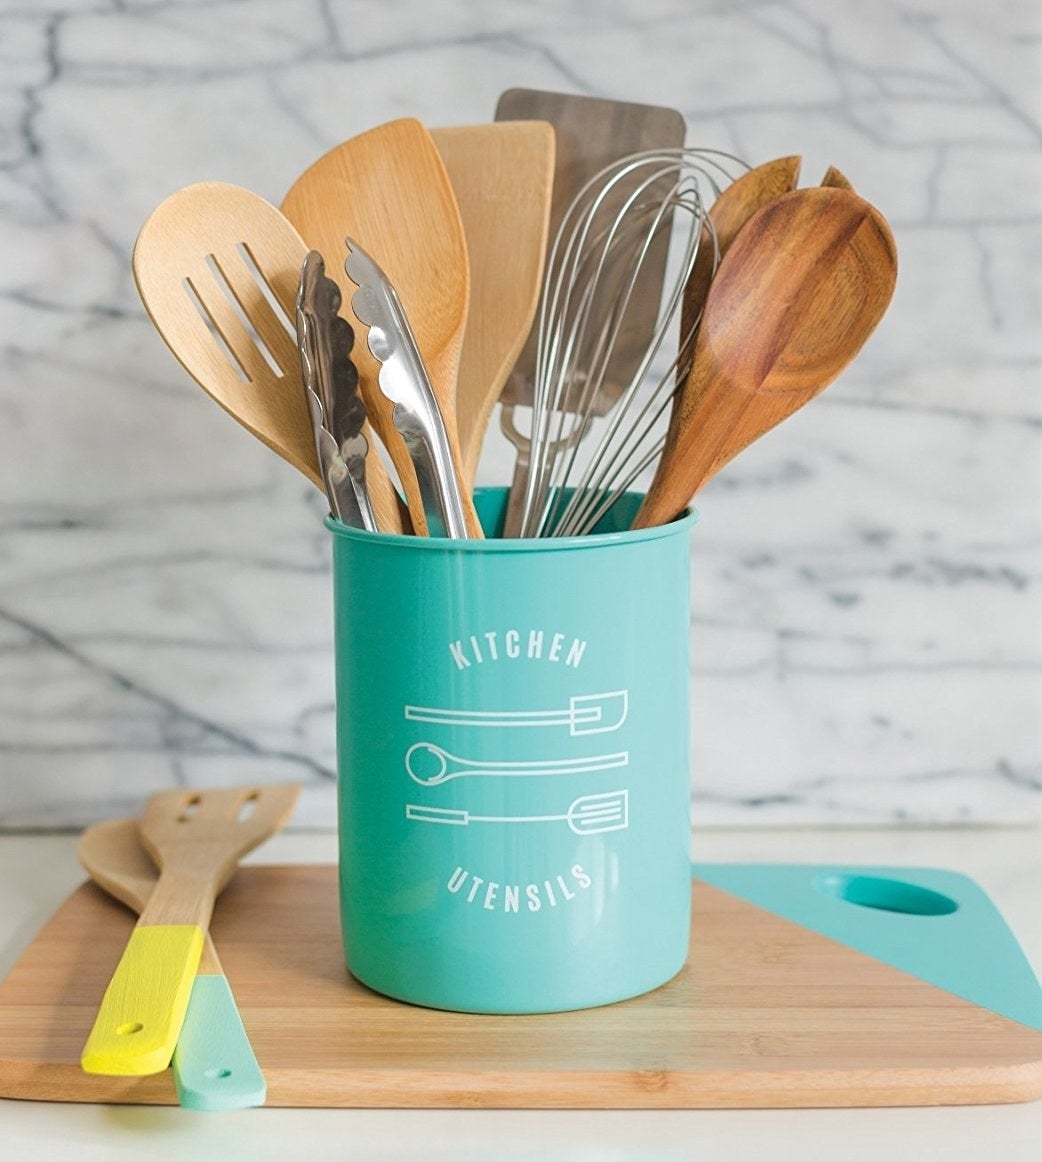 "Promising review: ""As silly as it sounds, I had been looking for a nice utensil holder for quite a while. This appears exactly as shown in the pictures and is made of a durable, easy to clean plastic material. It holds about a dozen assorted full-sized utensils (whisks, spatulas, marinade brushes, etc.), and looks great on my counter! The simple design pairs well with any kitchen and offers a great alternative to a boring plain or bamboo container."" –EmilyGet it from Amazon for $11.98+ (available in five colors)."